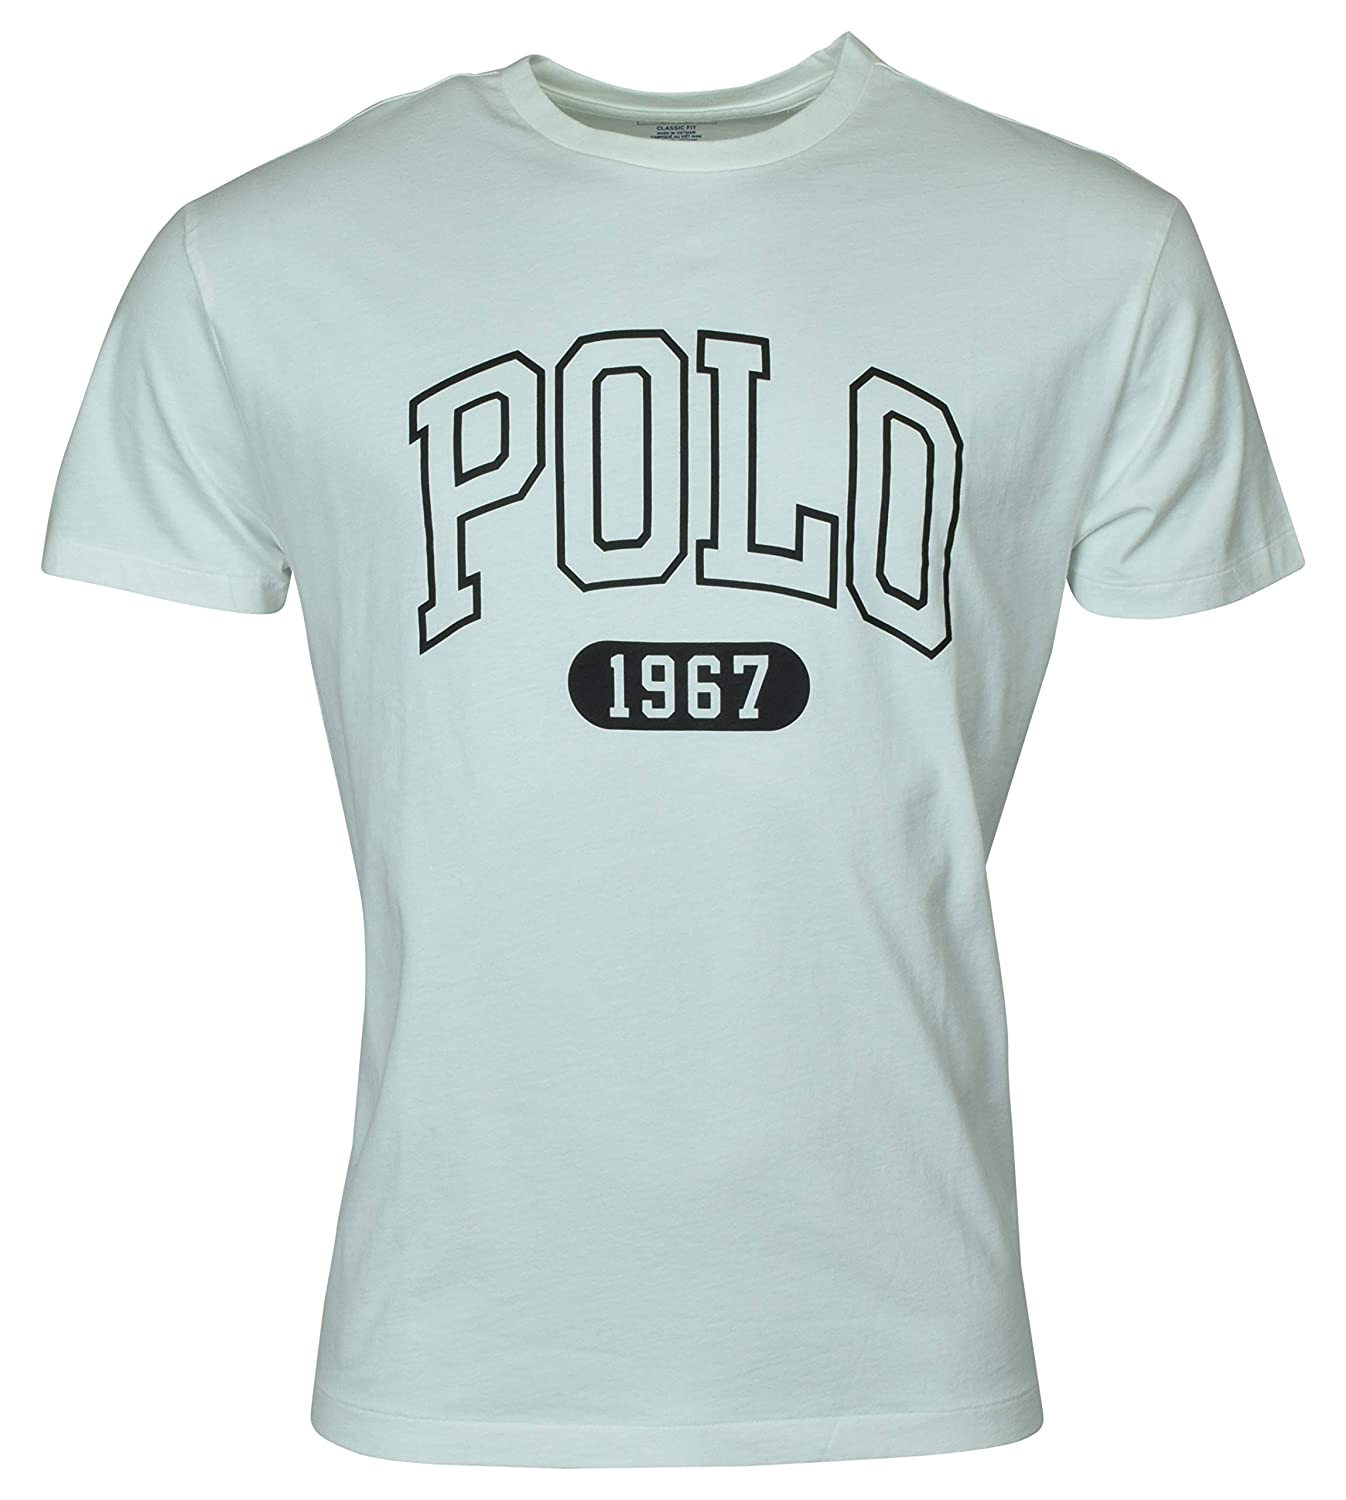 b6c7920673 Polo Ralph Lauren Mens Classic Fit Graphic Logo T-Shirt